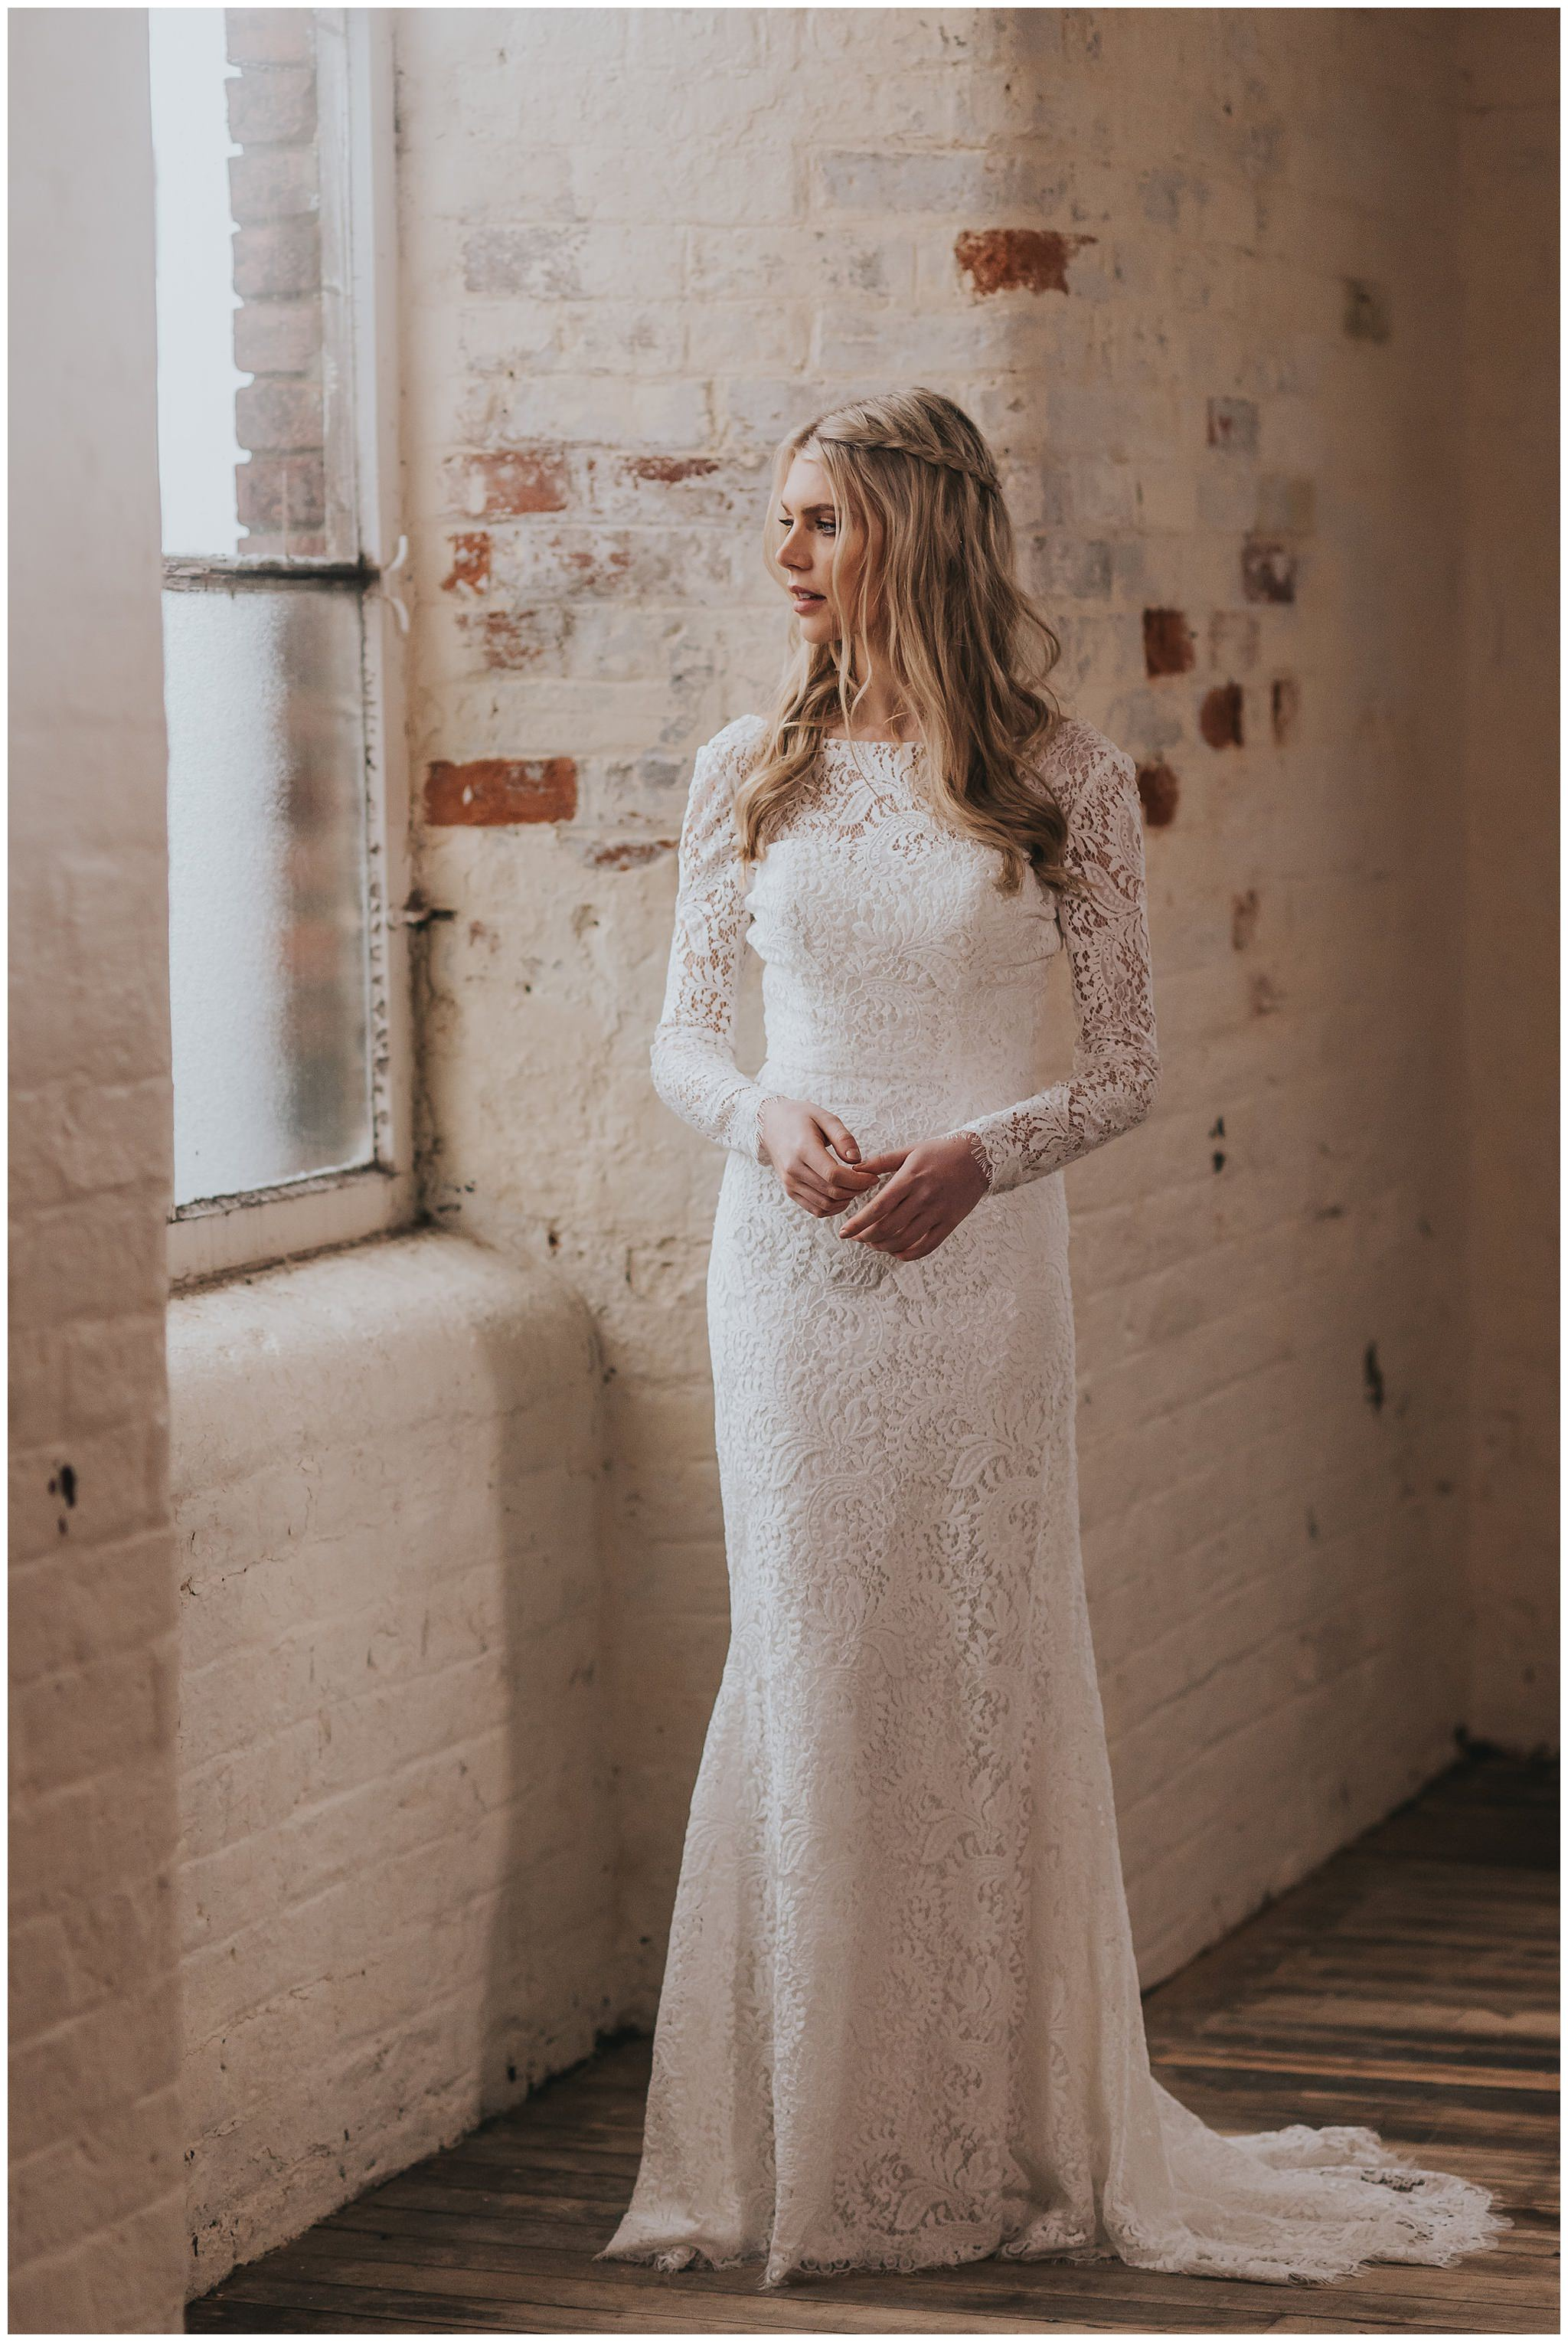 Luna by Shikoba Bride a long sleeve lace bridal dress